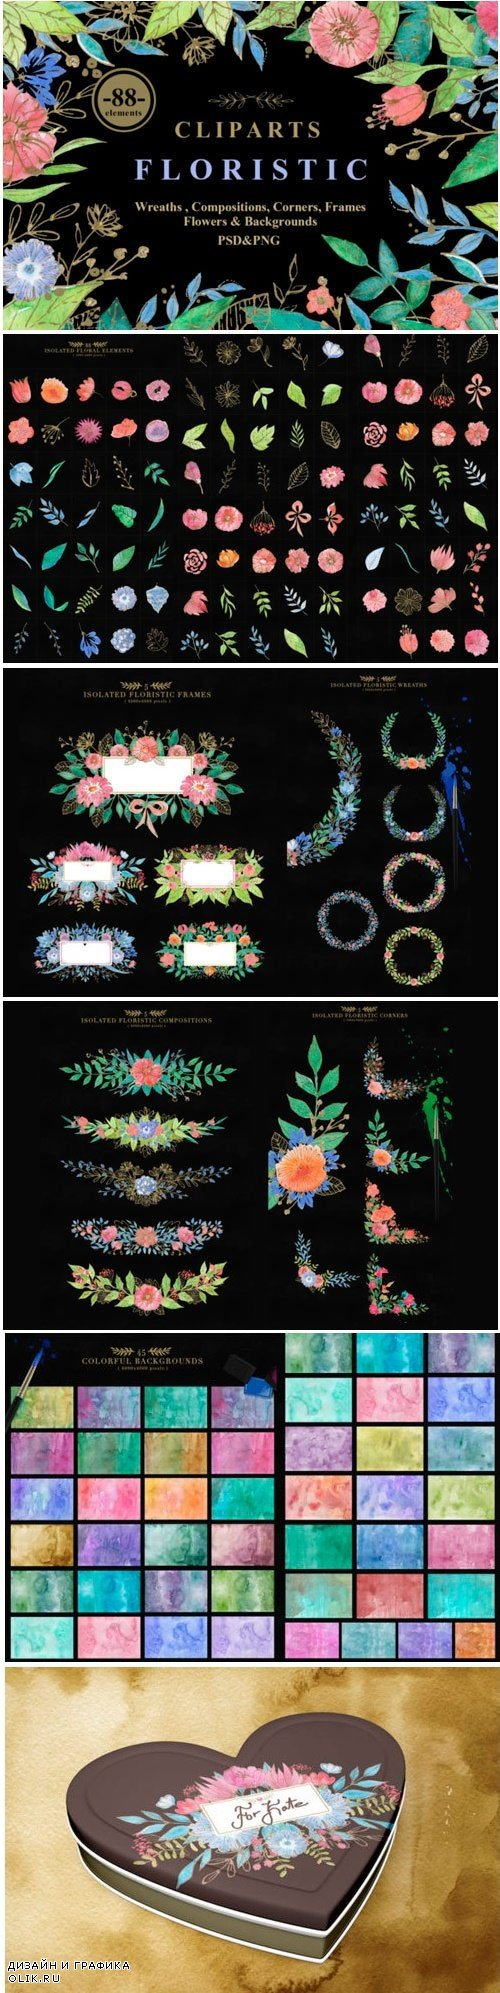 Collection of Floristic Cliparts - 2327546